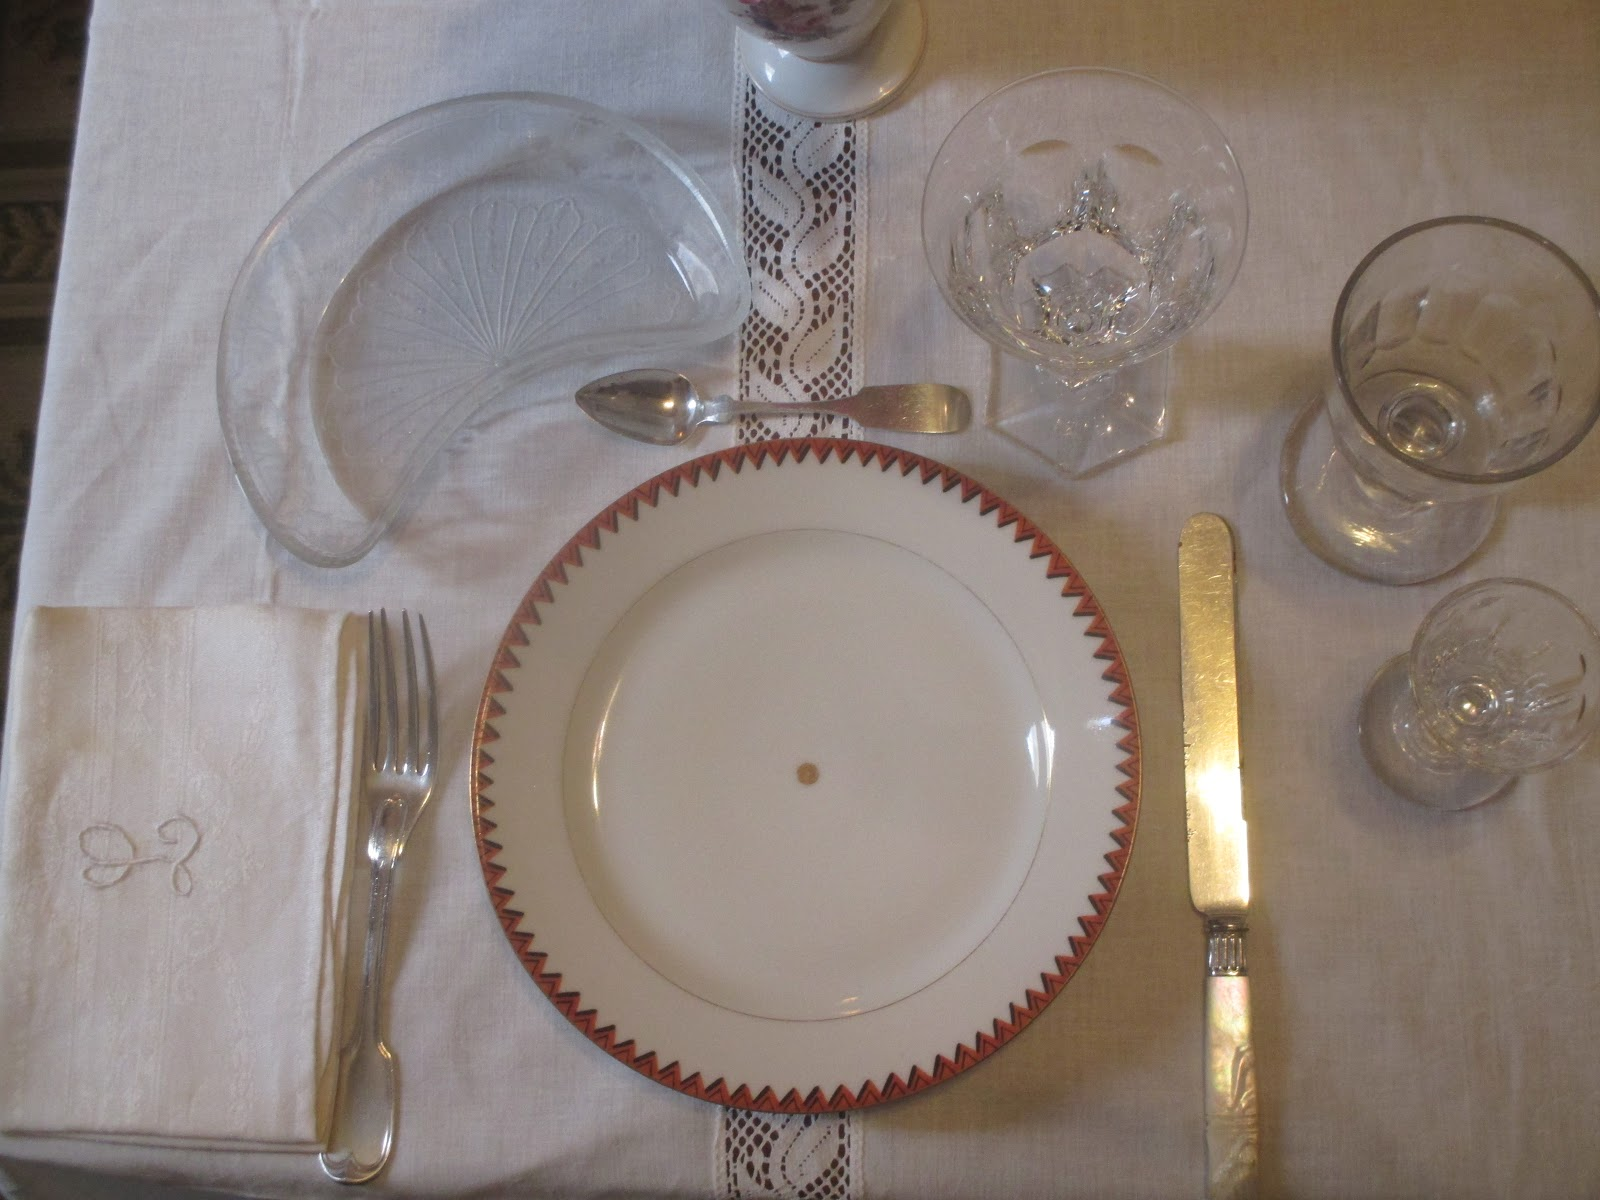 The table setting includes a 1830u0027s Old Paris porcelain plate from a dinner service originally belonging to a early 19th century New Orleans Creole family. & Southern Folk Artist u0026 Antiques Dealer/Collector: Lunch at le ...